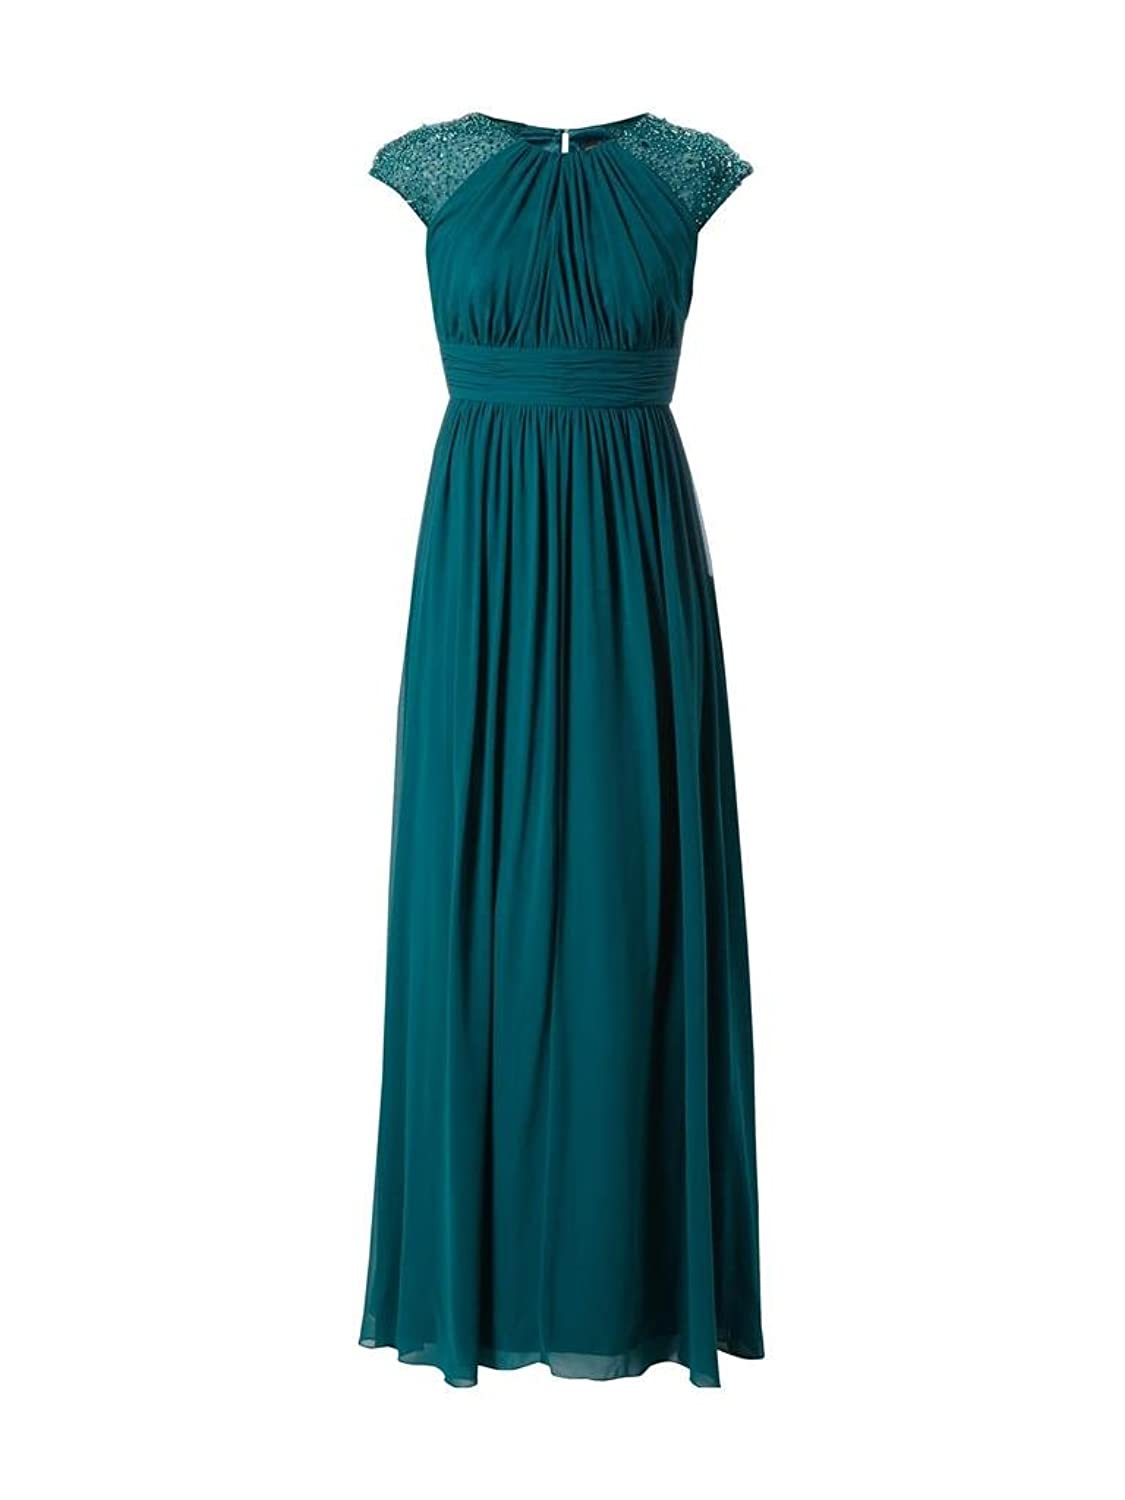 Charm Bridal Green Chiffon Mother of Bride Party Dresses with Short Sleeves Long